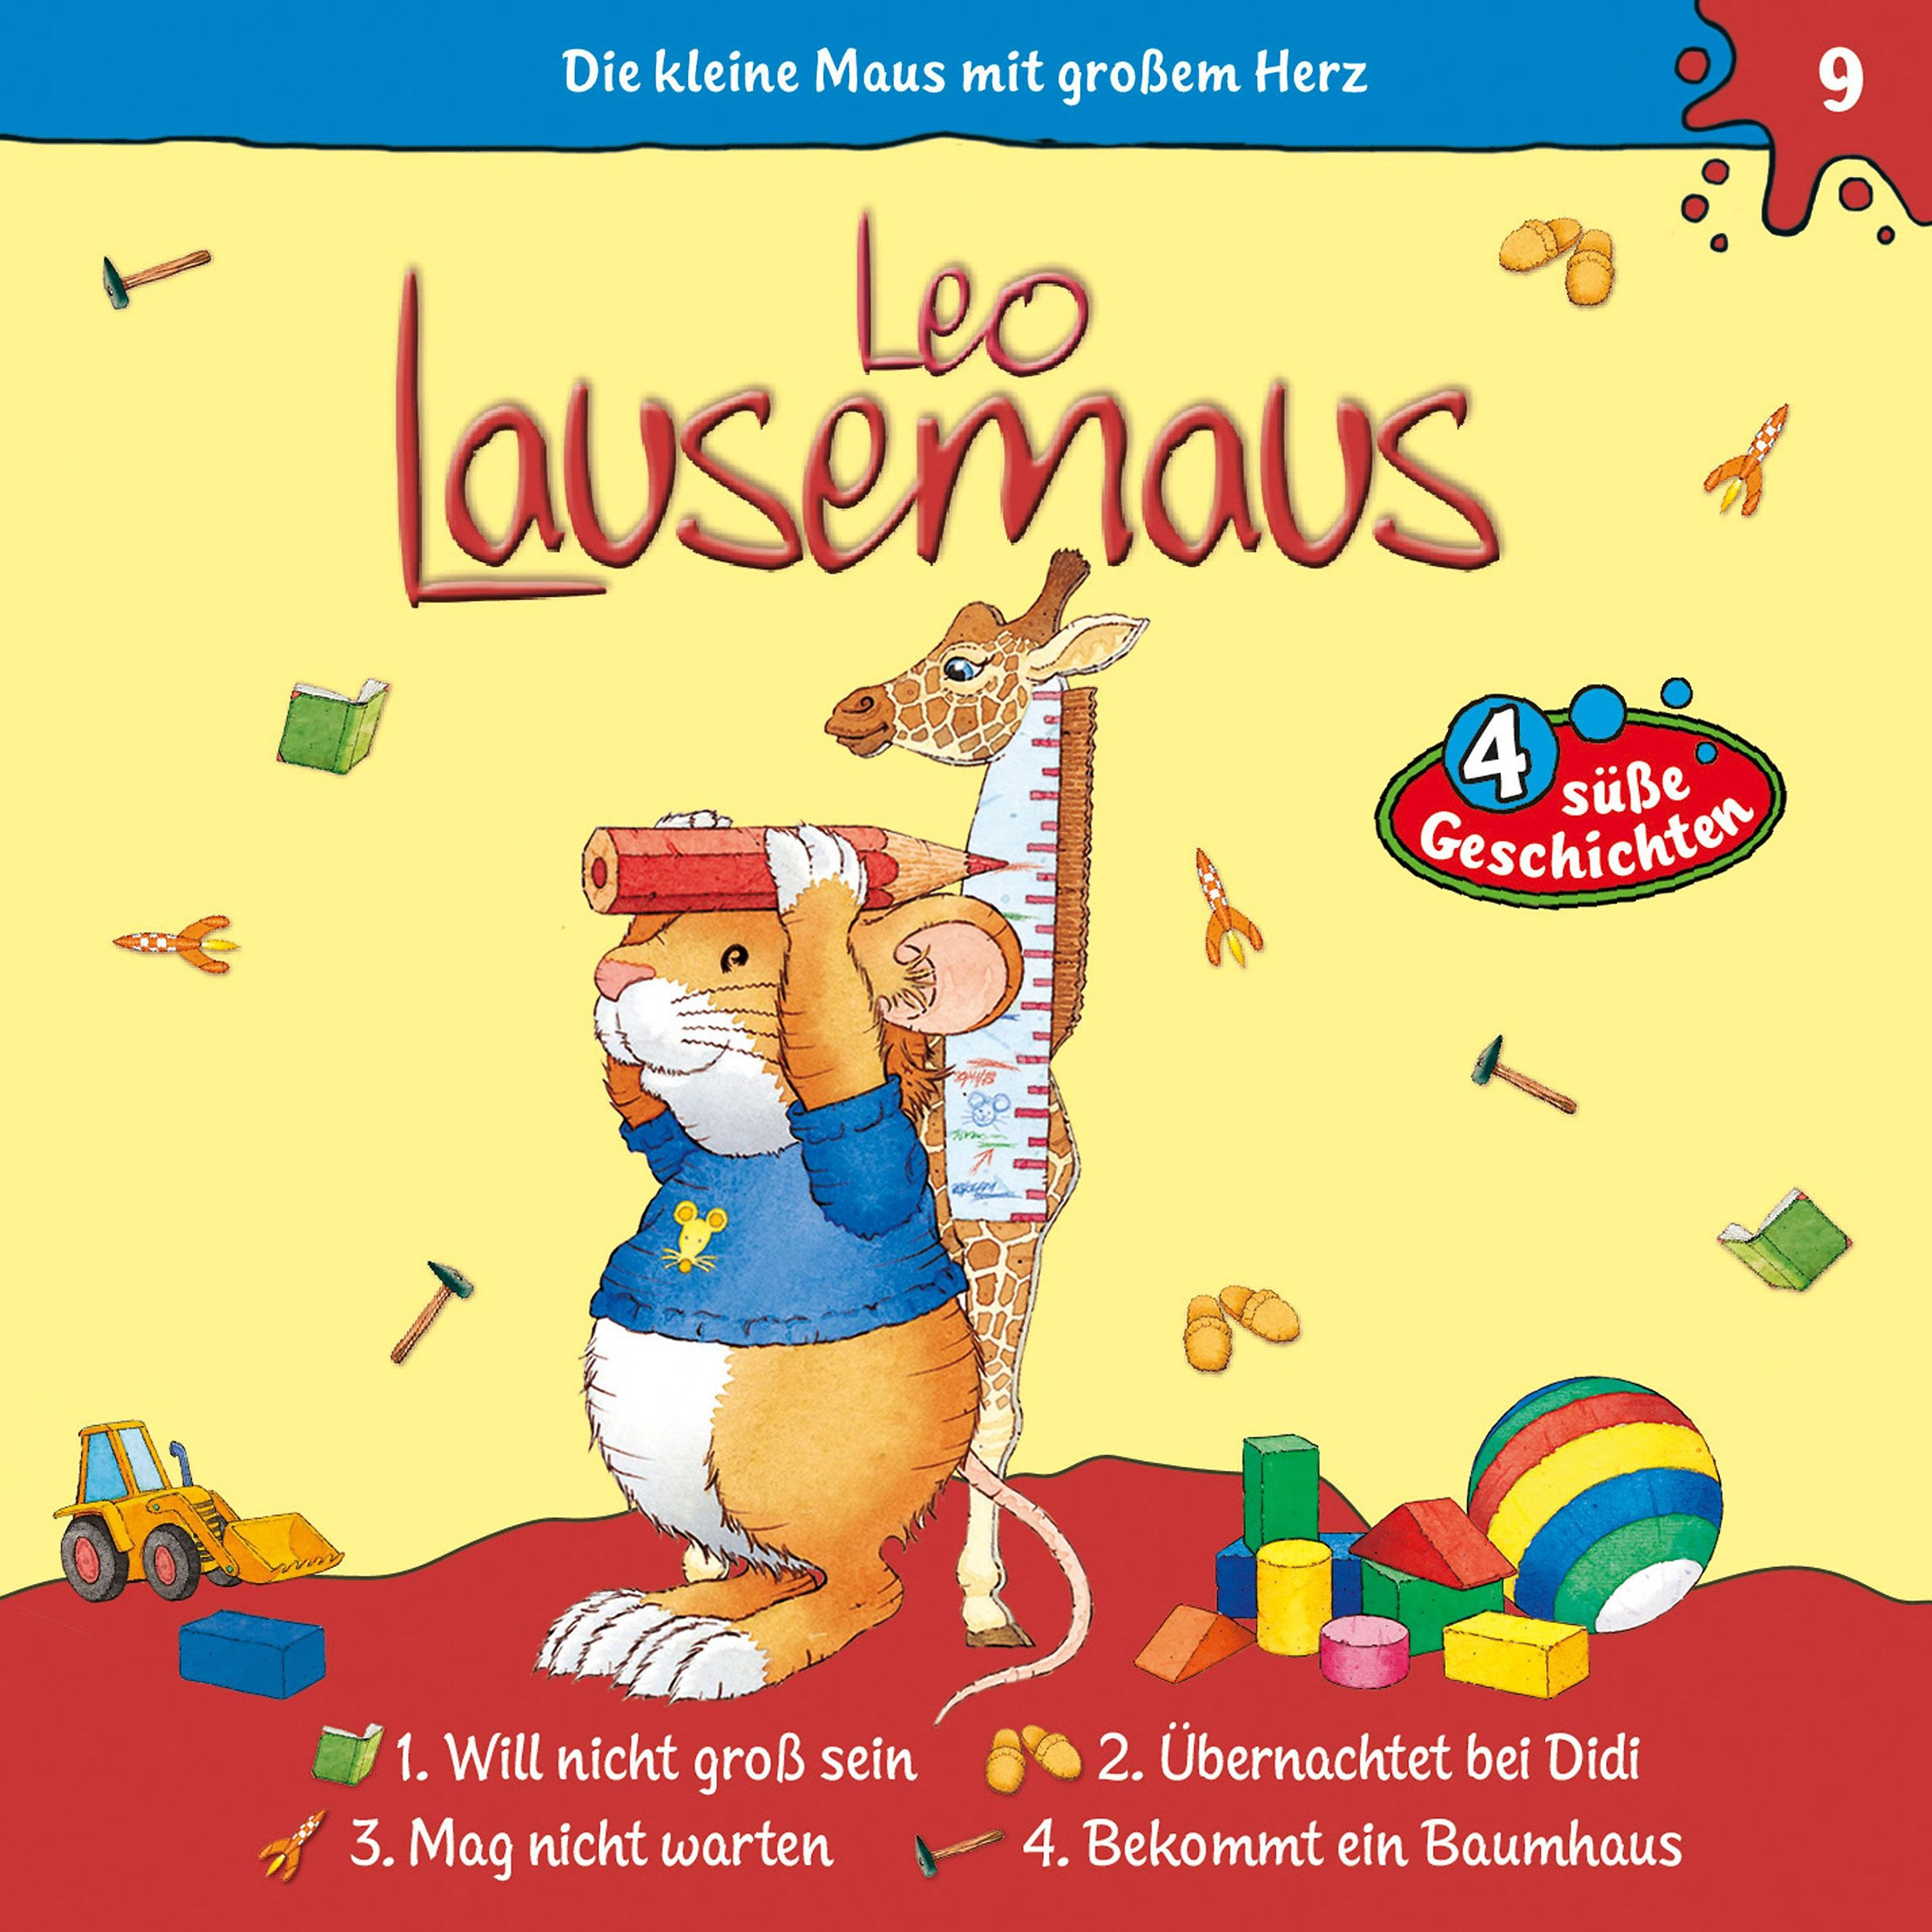 leo lausemaus: leo lausemaus - folge 9 hörbuch download